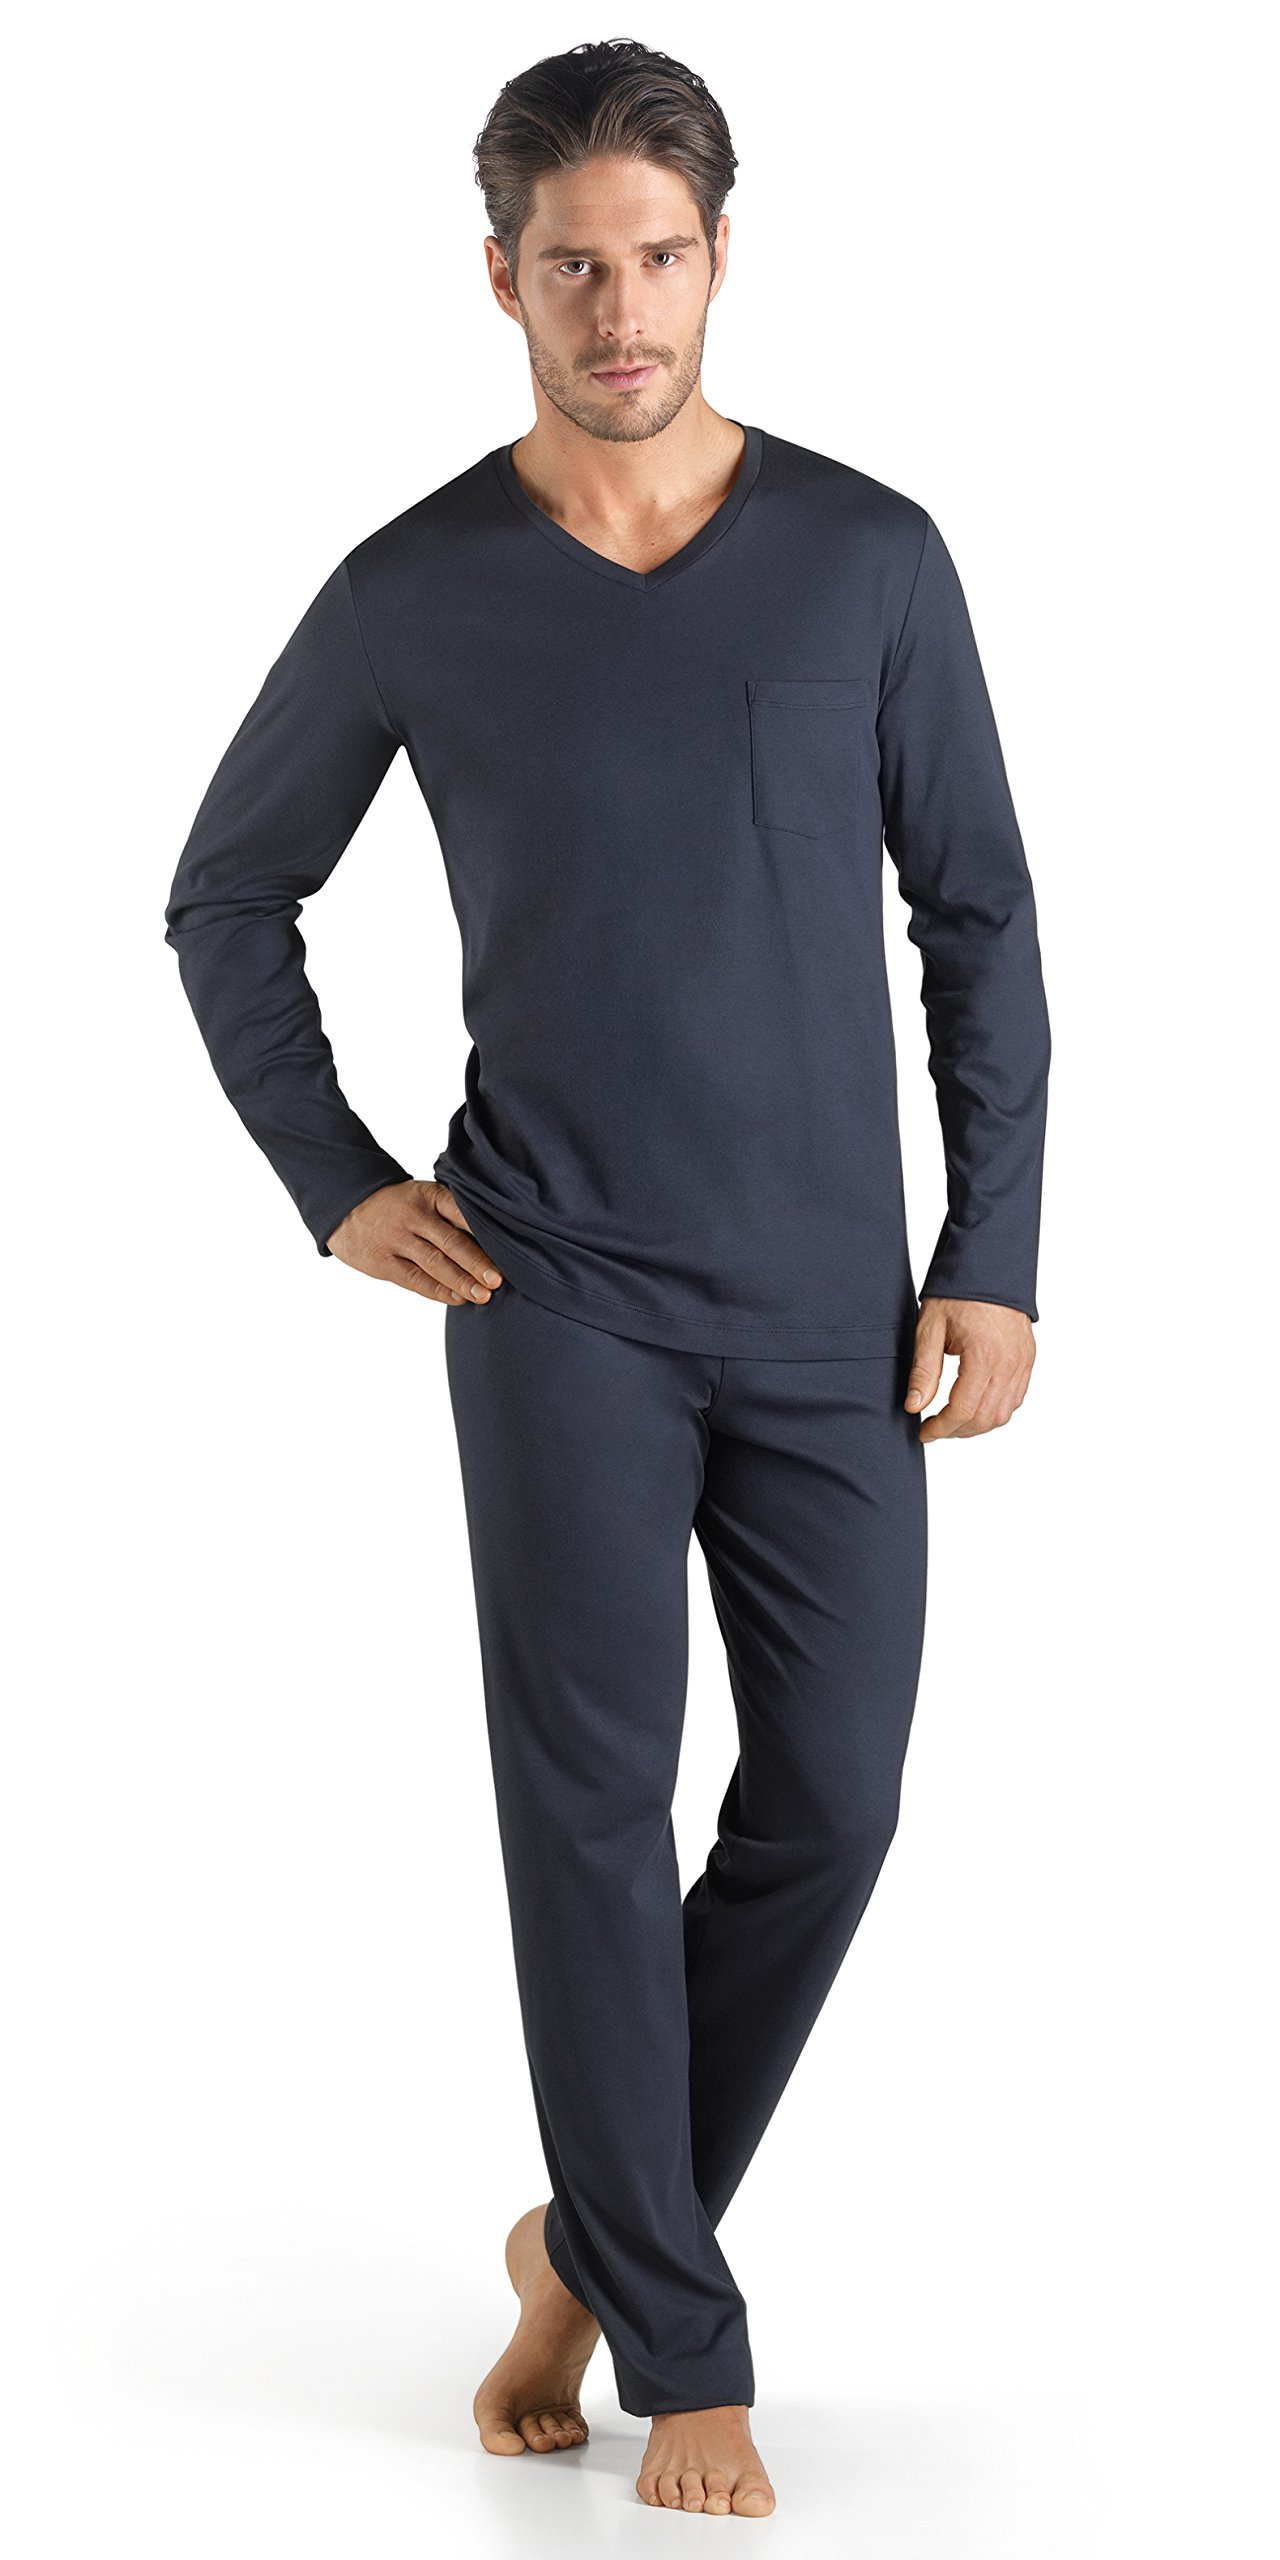 Hanro Men's Sea Island Cotton Long Sleeve Pajama 75284, Black Iris, XX-Large